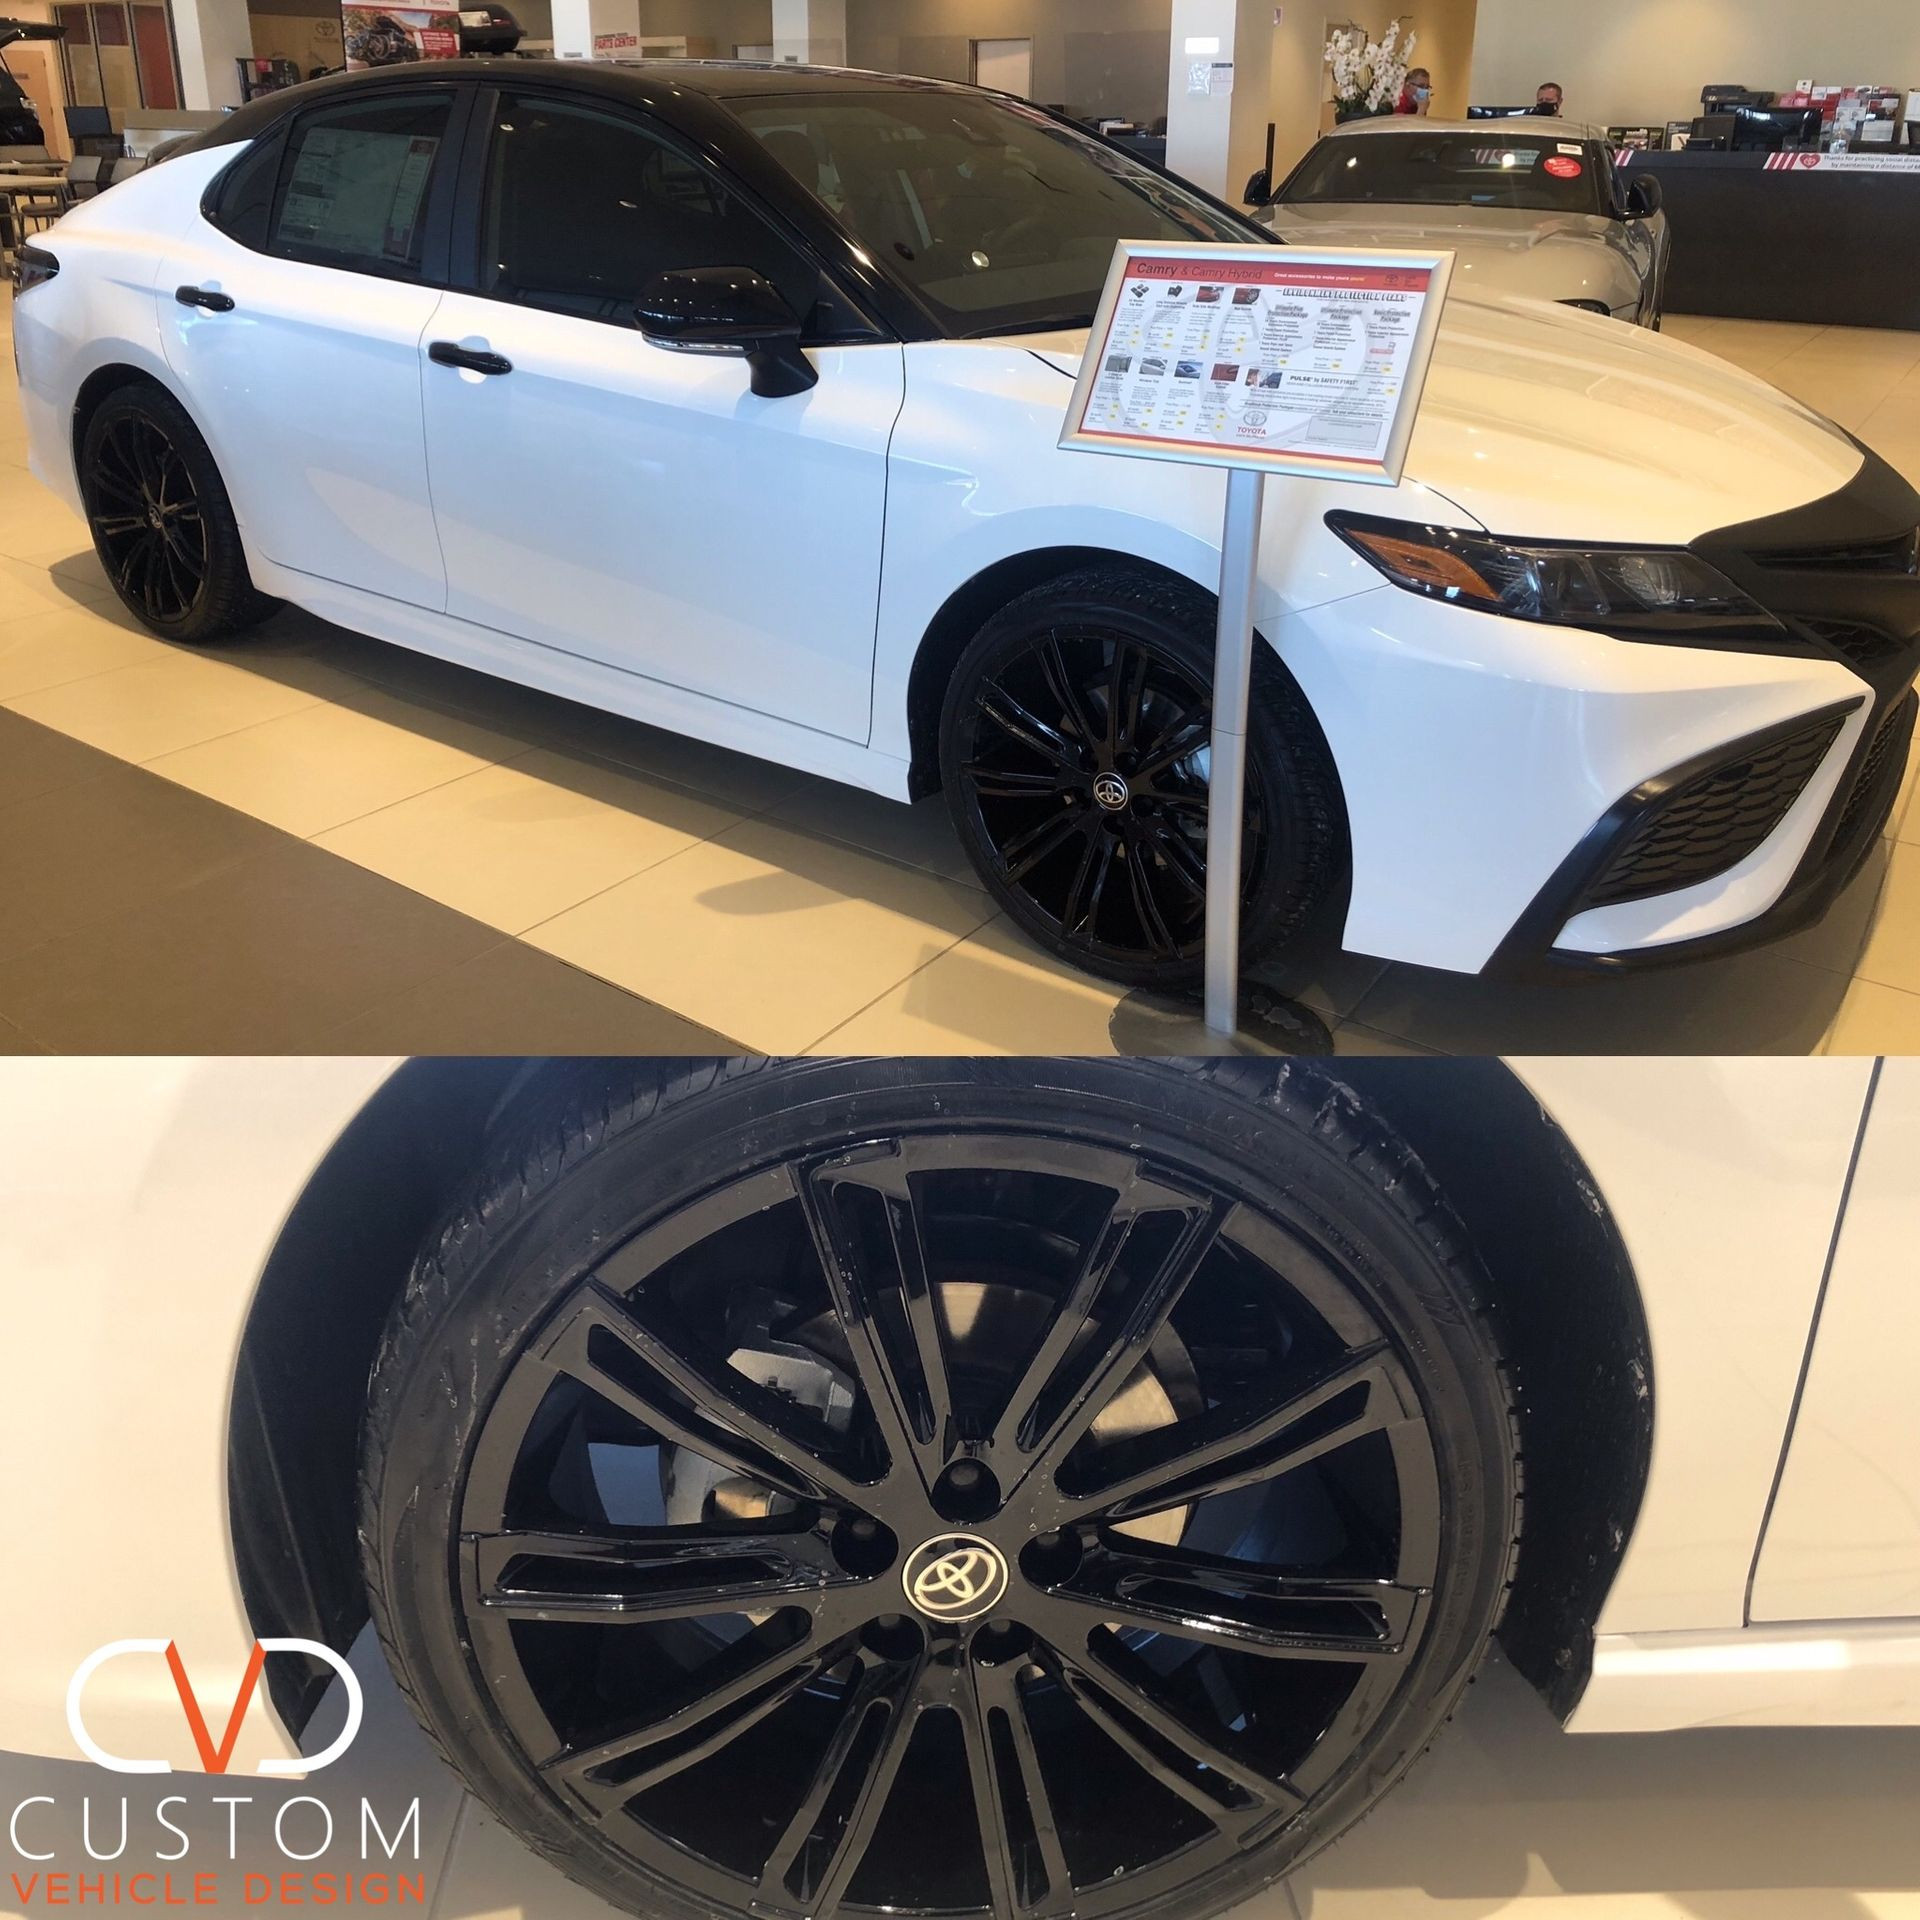 2021 Toyota Camry customized by CVD